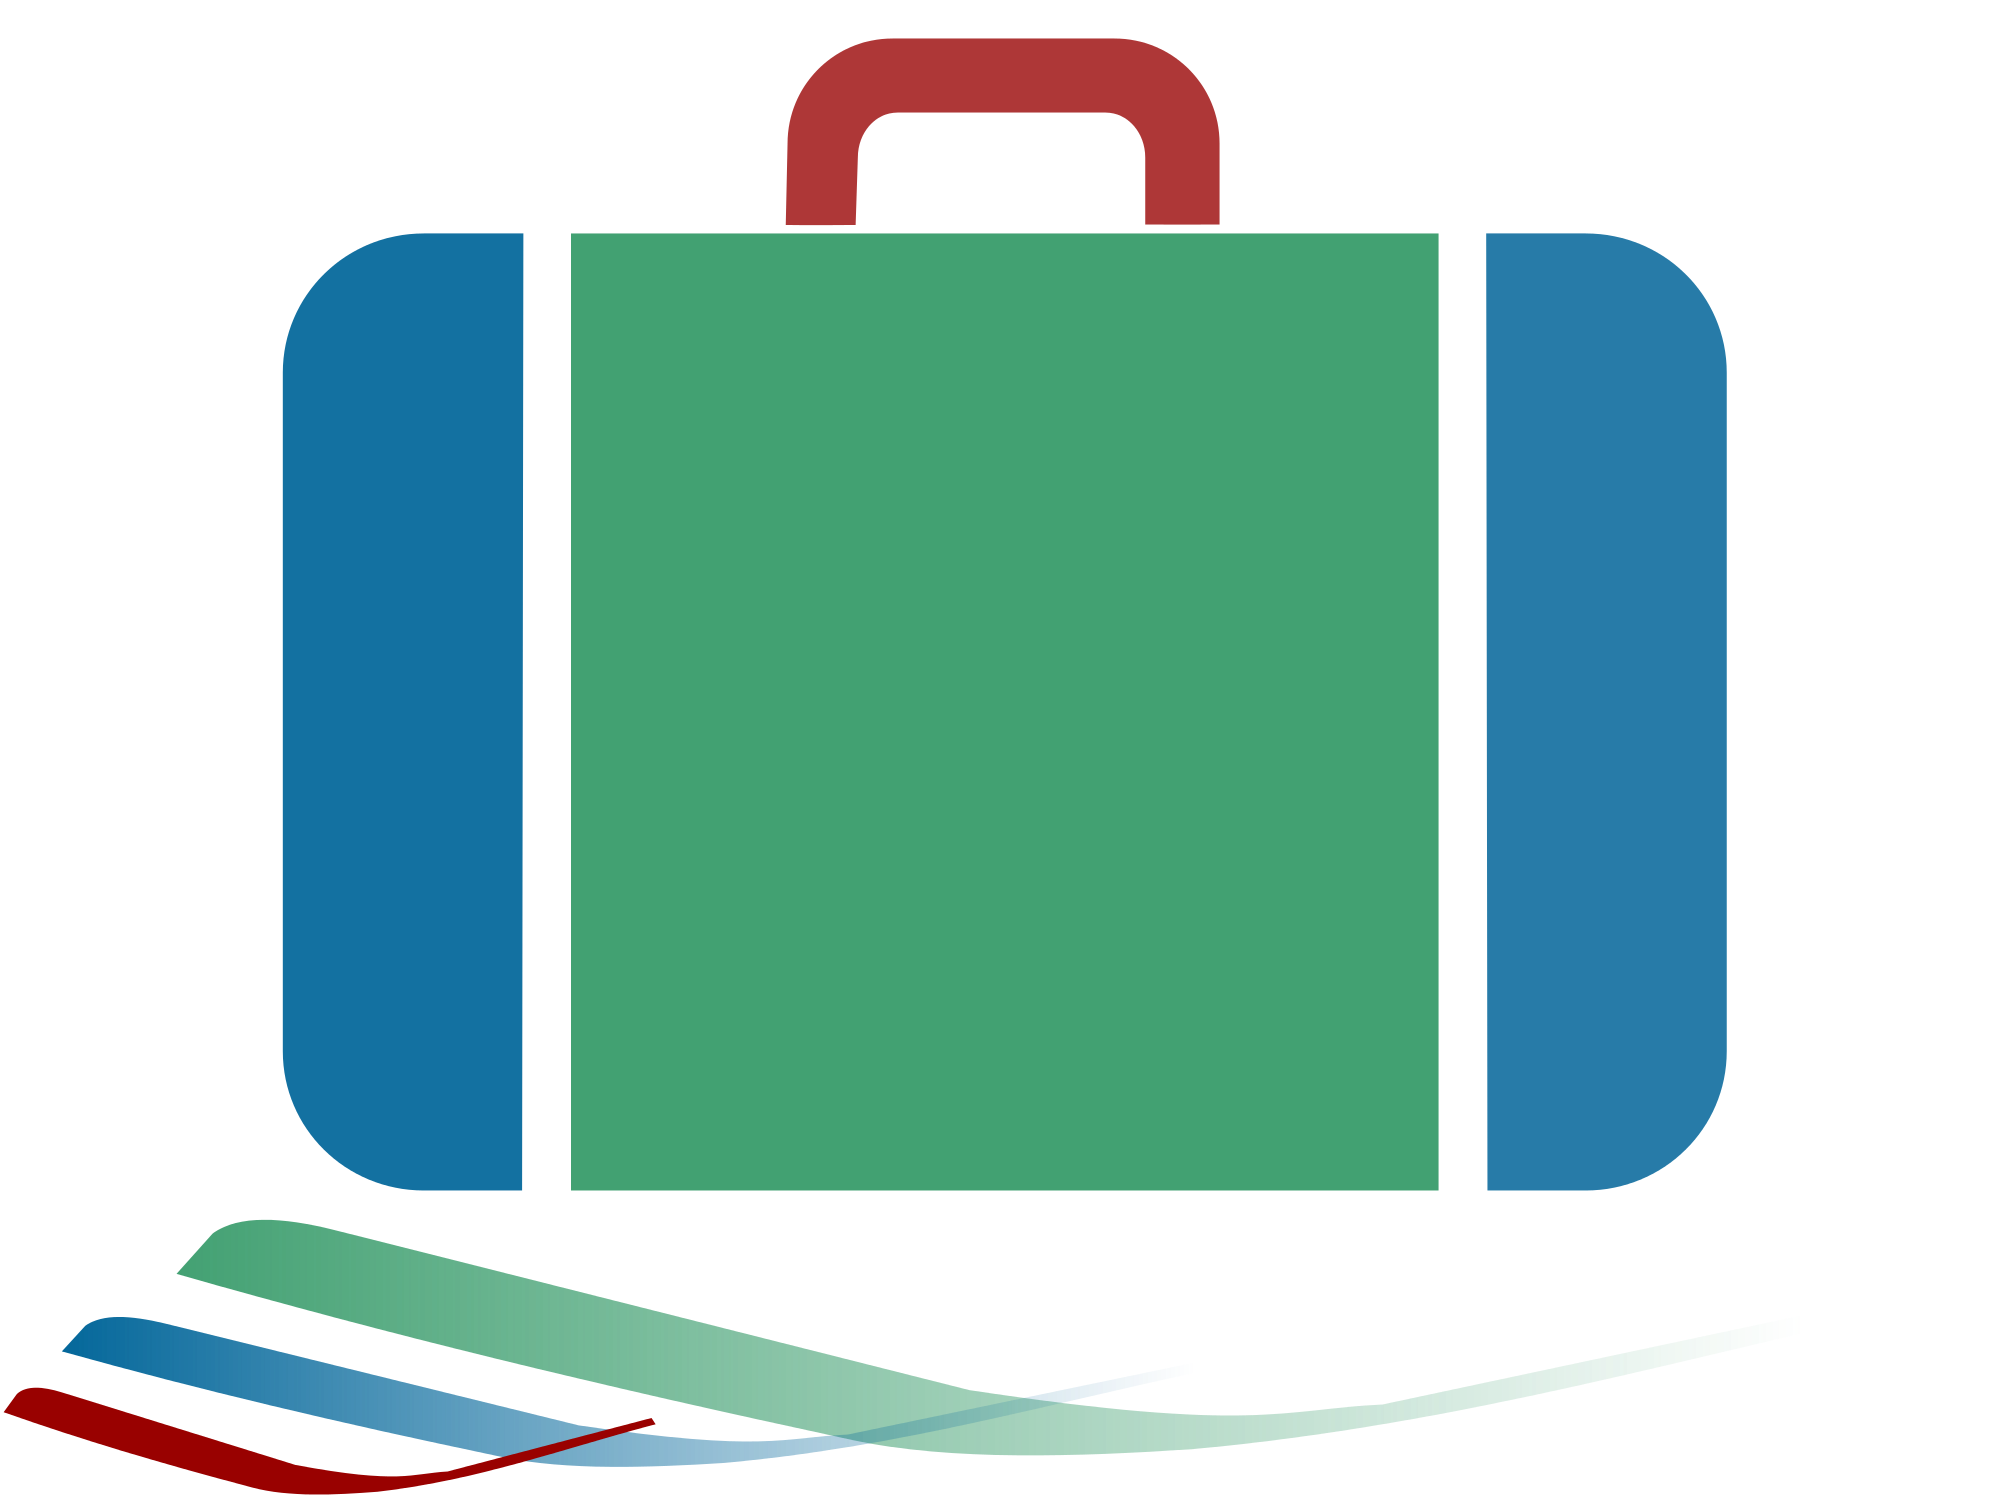 File:Suitcase icon blue green red dynamic v09.svg - Wikimedia Commons